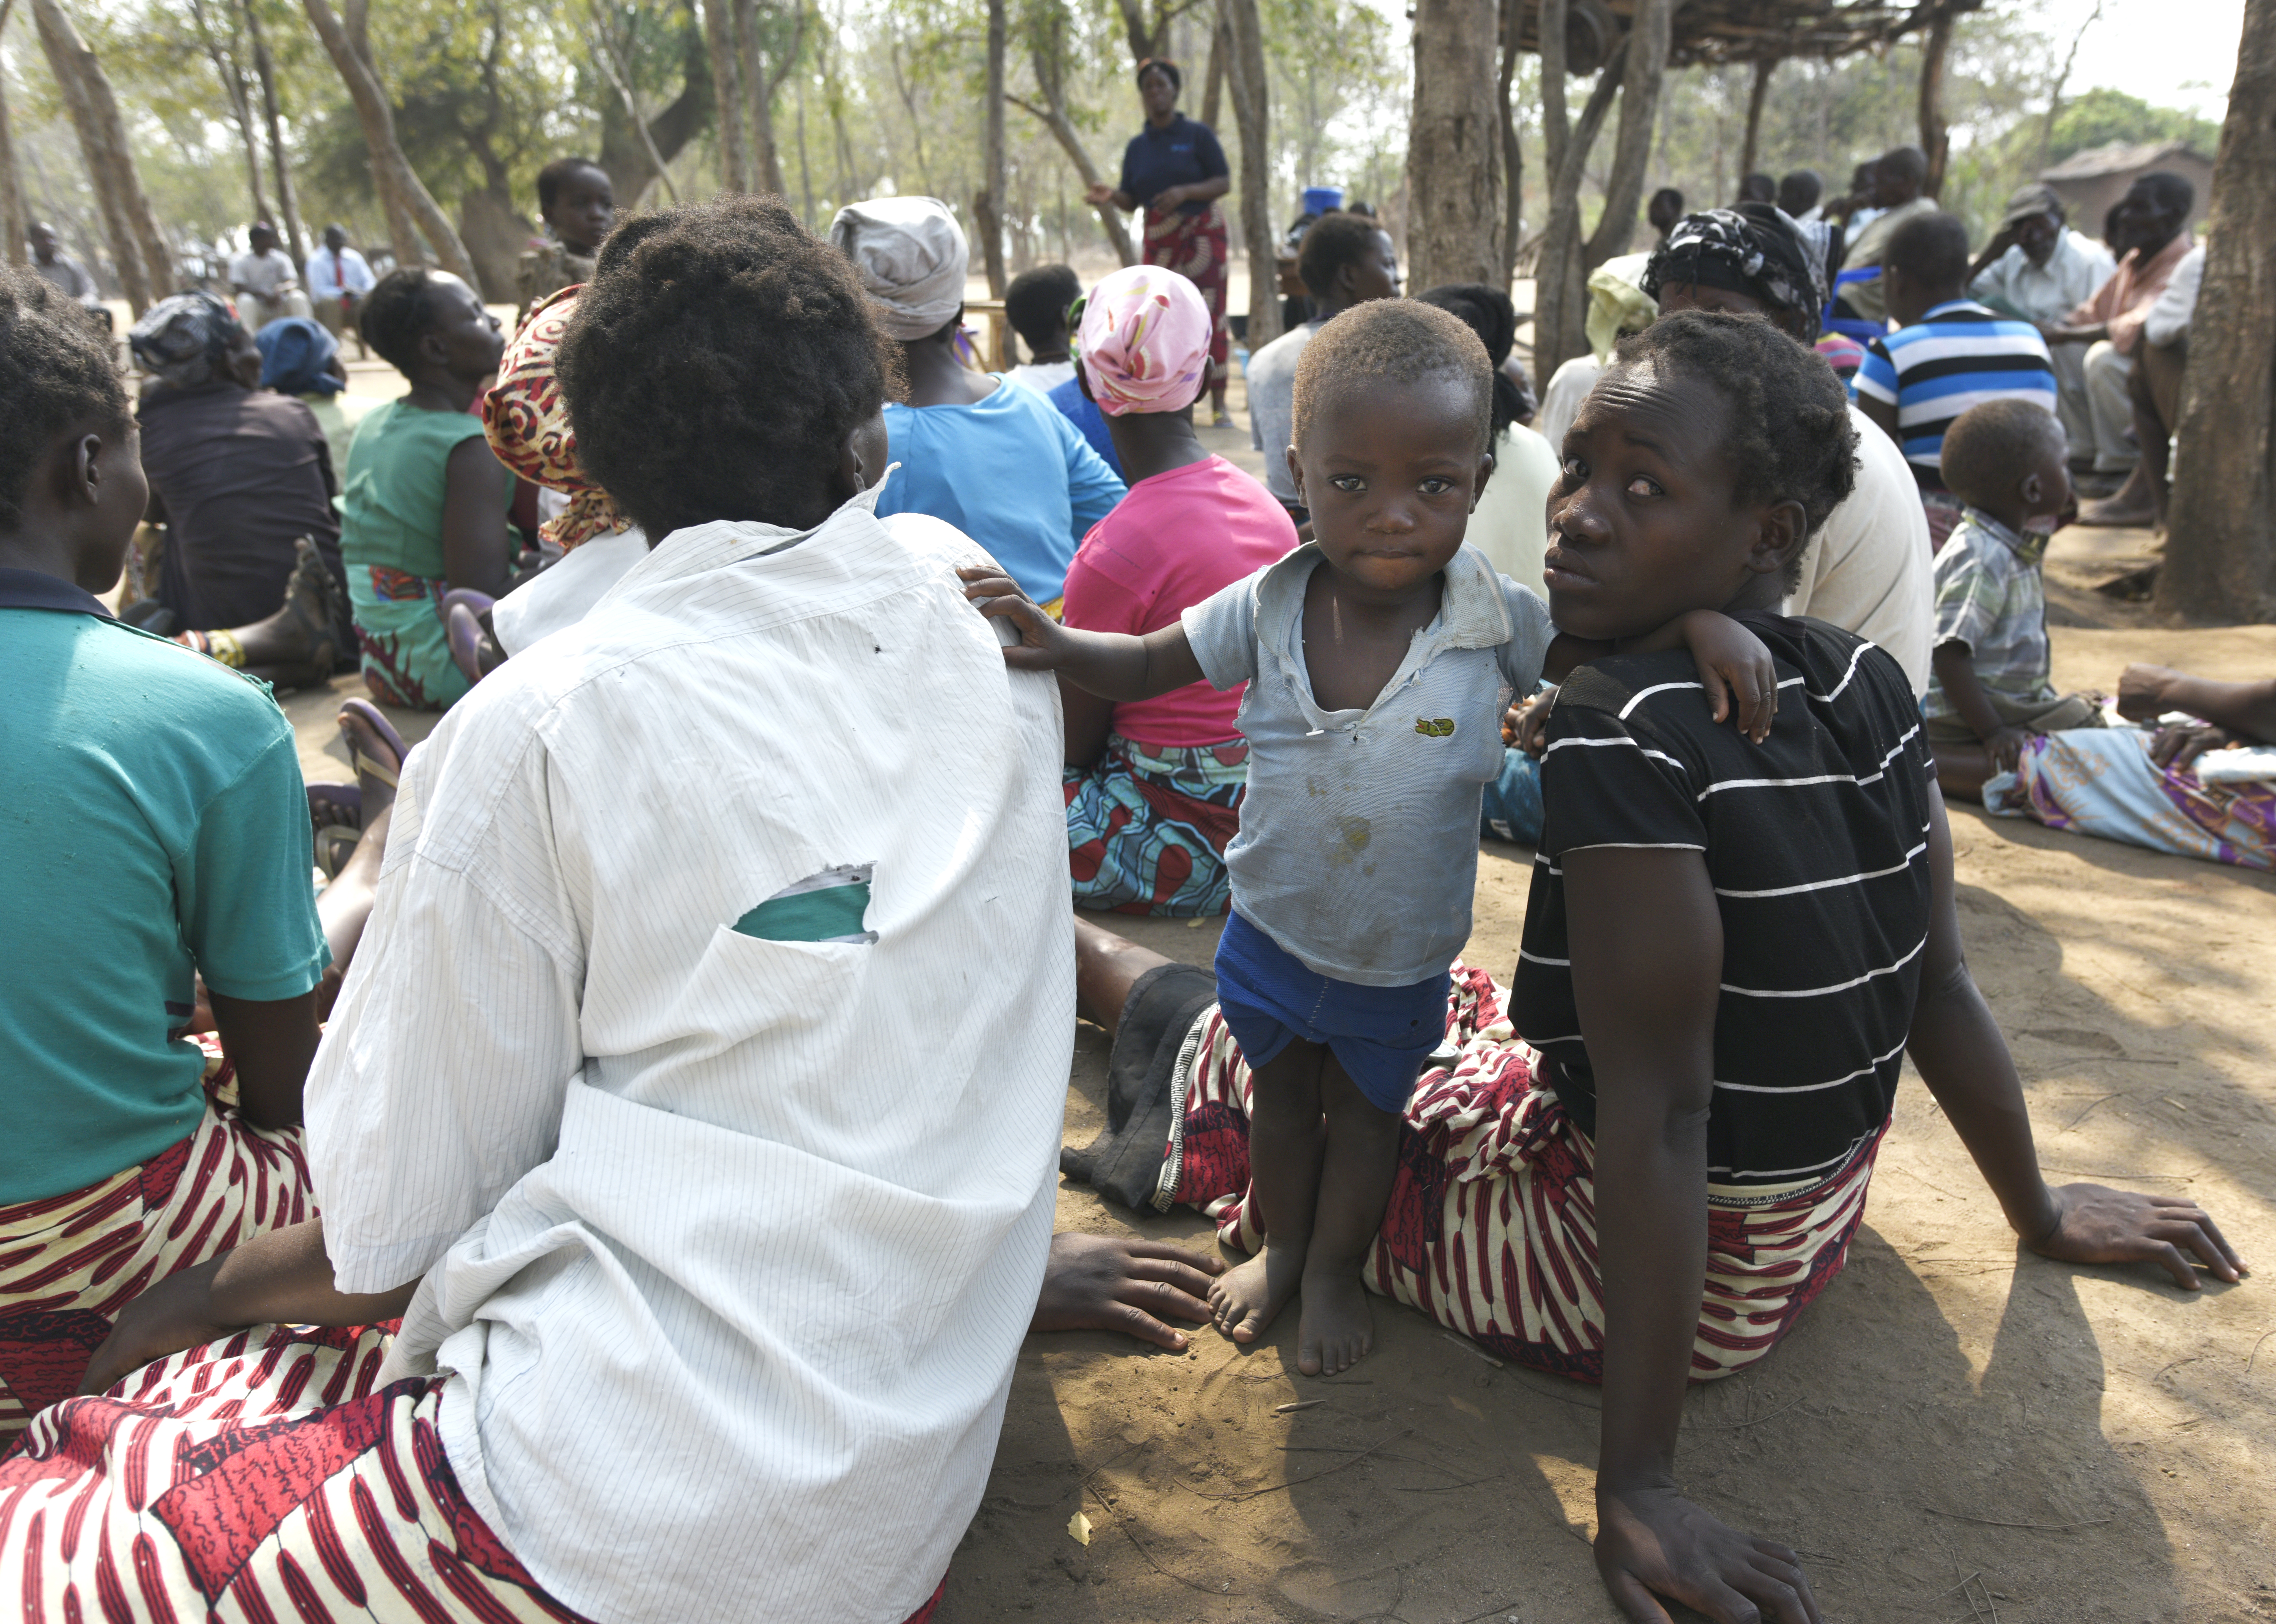 Families wait for antibiotic medication In Chimphepo Village, Chikwawa District, Malawi, a mass drug administration (MDA) is held on Oct. 18, 2016, for the elimination of trachoma. The Task Force for Global Health's International Trachoma Initiative manages Pfizer's donation of antibiotic for MDA, which is part of a comprehensive public health strategy called SAFE to eliminate trachoma. During the weeks of Oct. 17-28, 2016, an estimated 500,000 people in more than 100 communities took part in MDA in Malawi. The country is expected to eliminate trachoma as a public health problem by 2020. Tues. Oct 18th, 2016 (Photo By Billy Weeks)